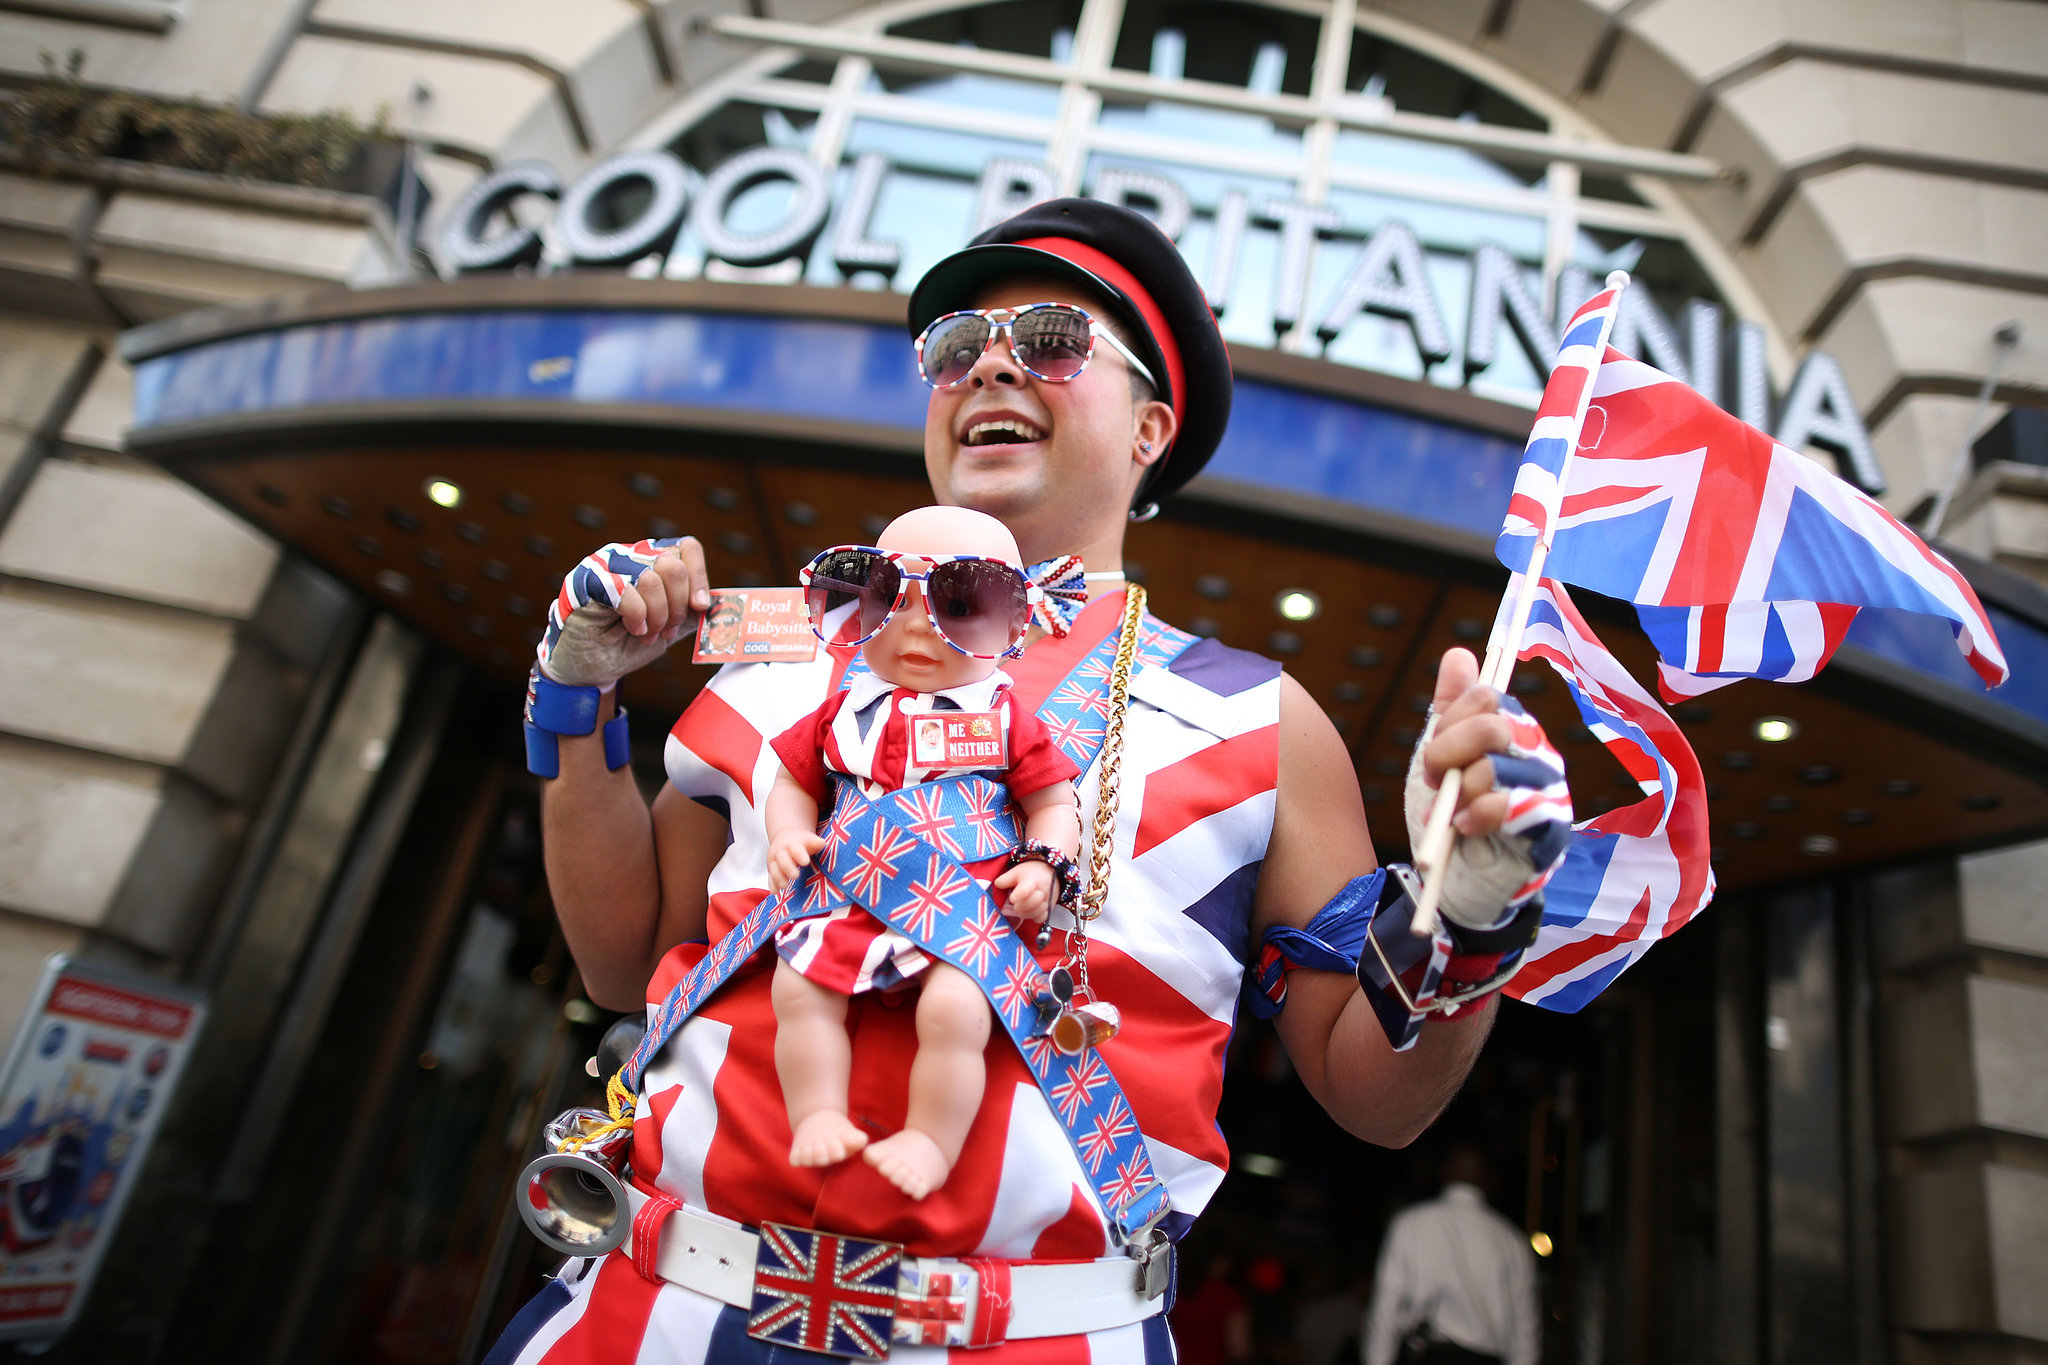 One man waved a flag in London's Piccadilly Circus to celebrate — with a fake baby attached to his chest.